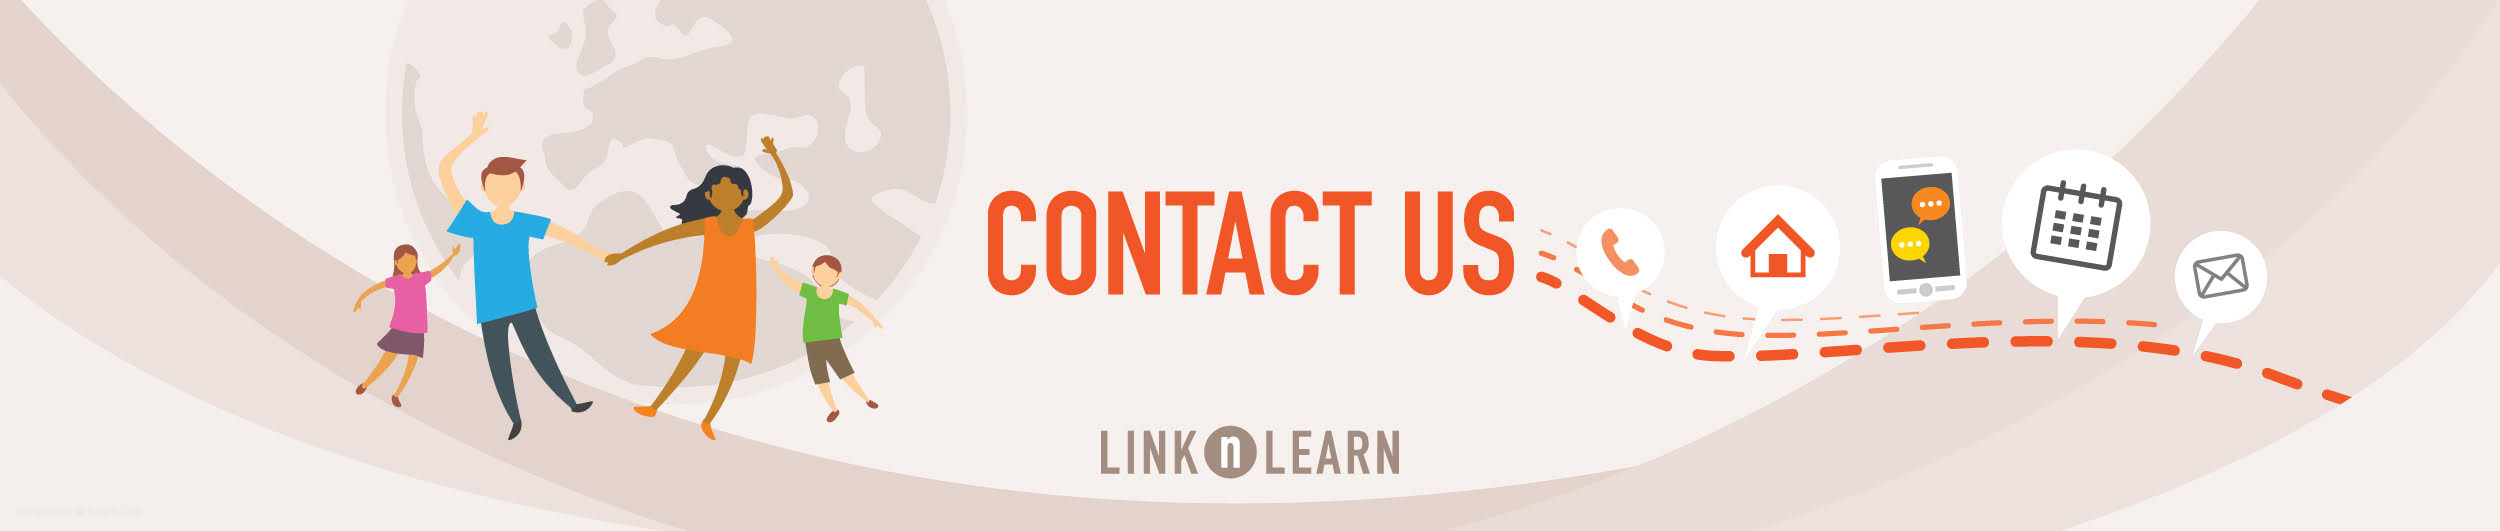 Link n Learn - Contact Us - Banner